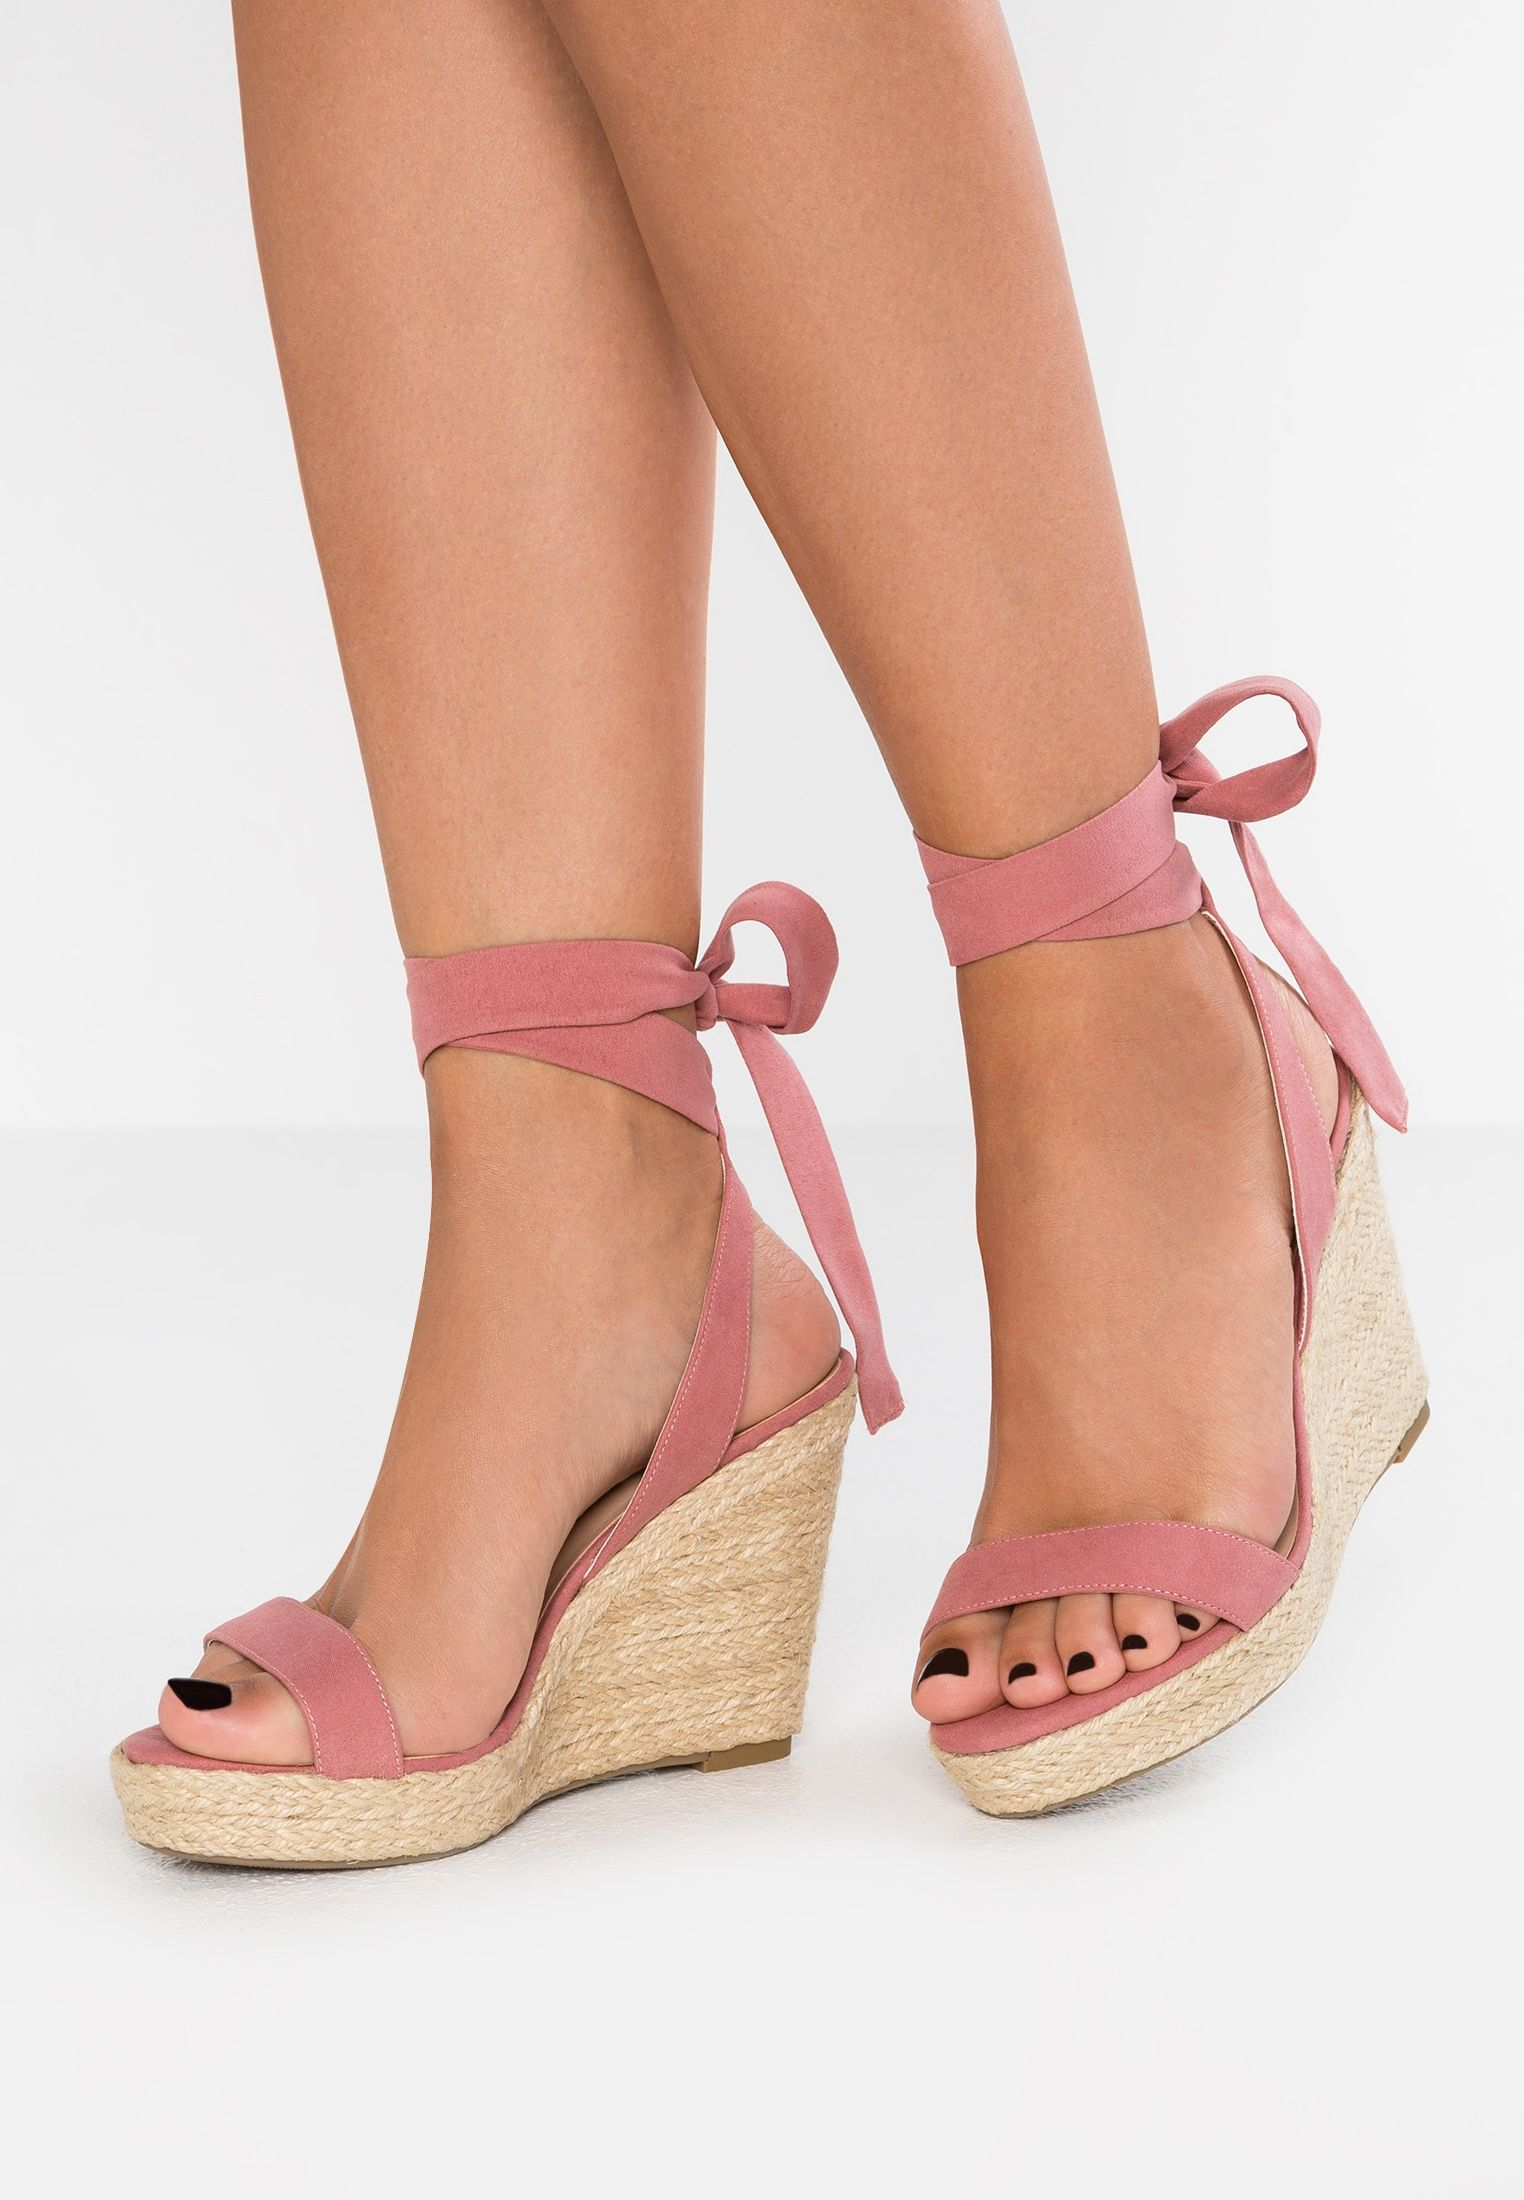 shoes women, Shoes heels wedges